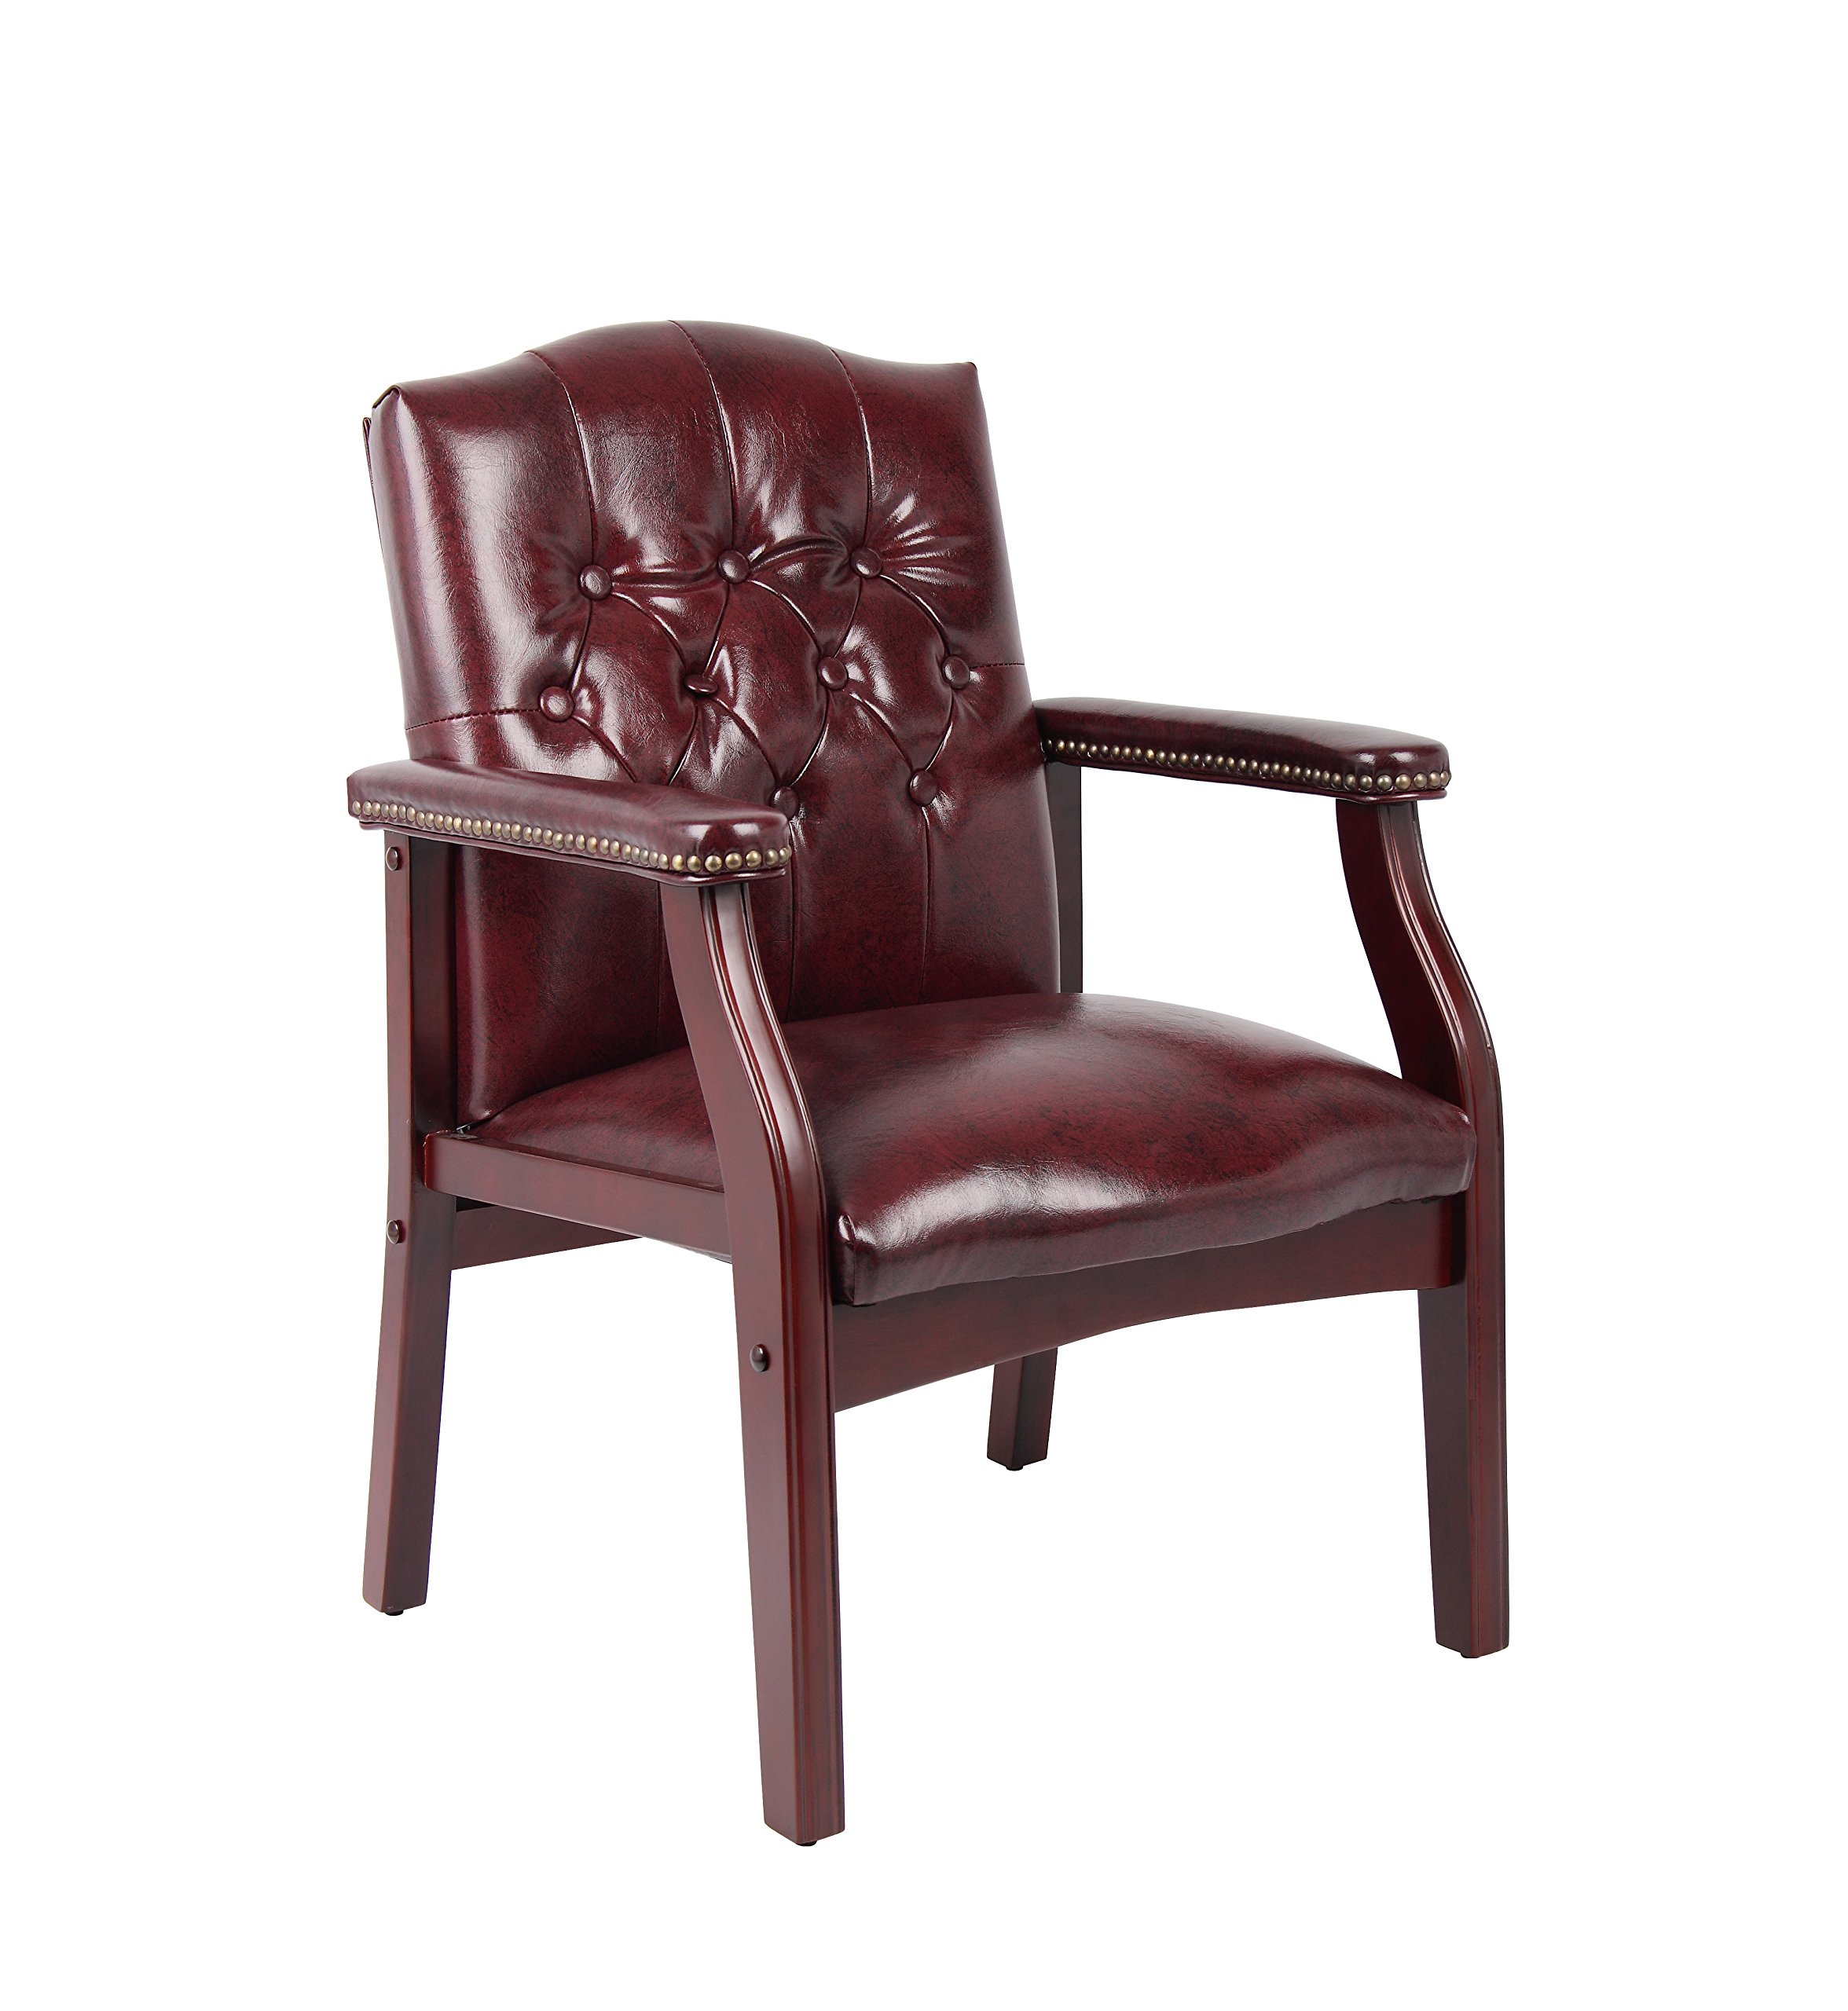 Boss Office Products B959-BY Ivy League Executive Guest Chair in Burgundy by Boss Office Products